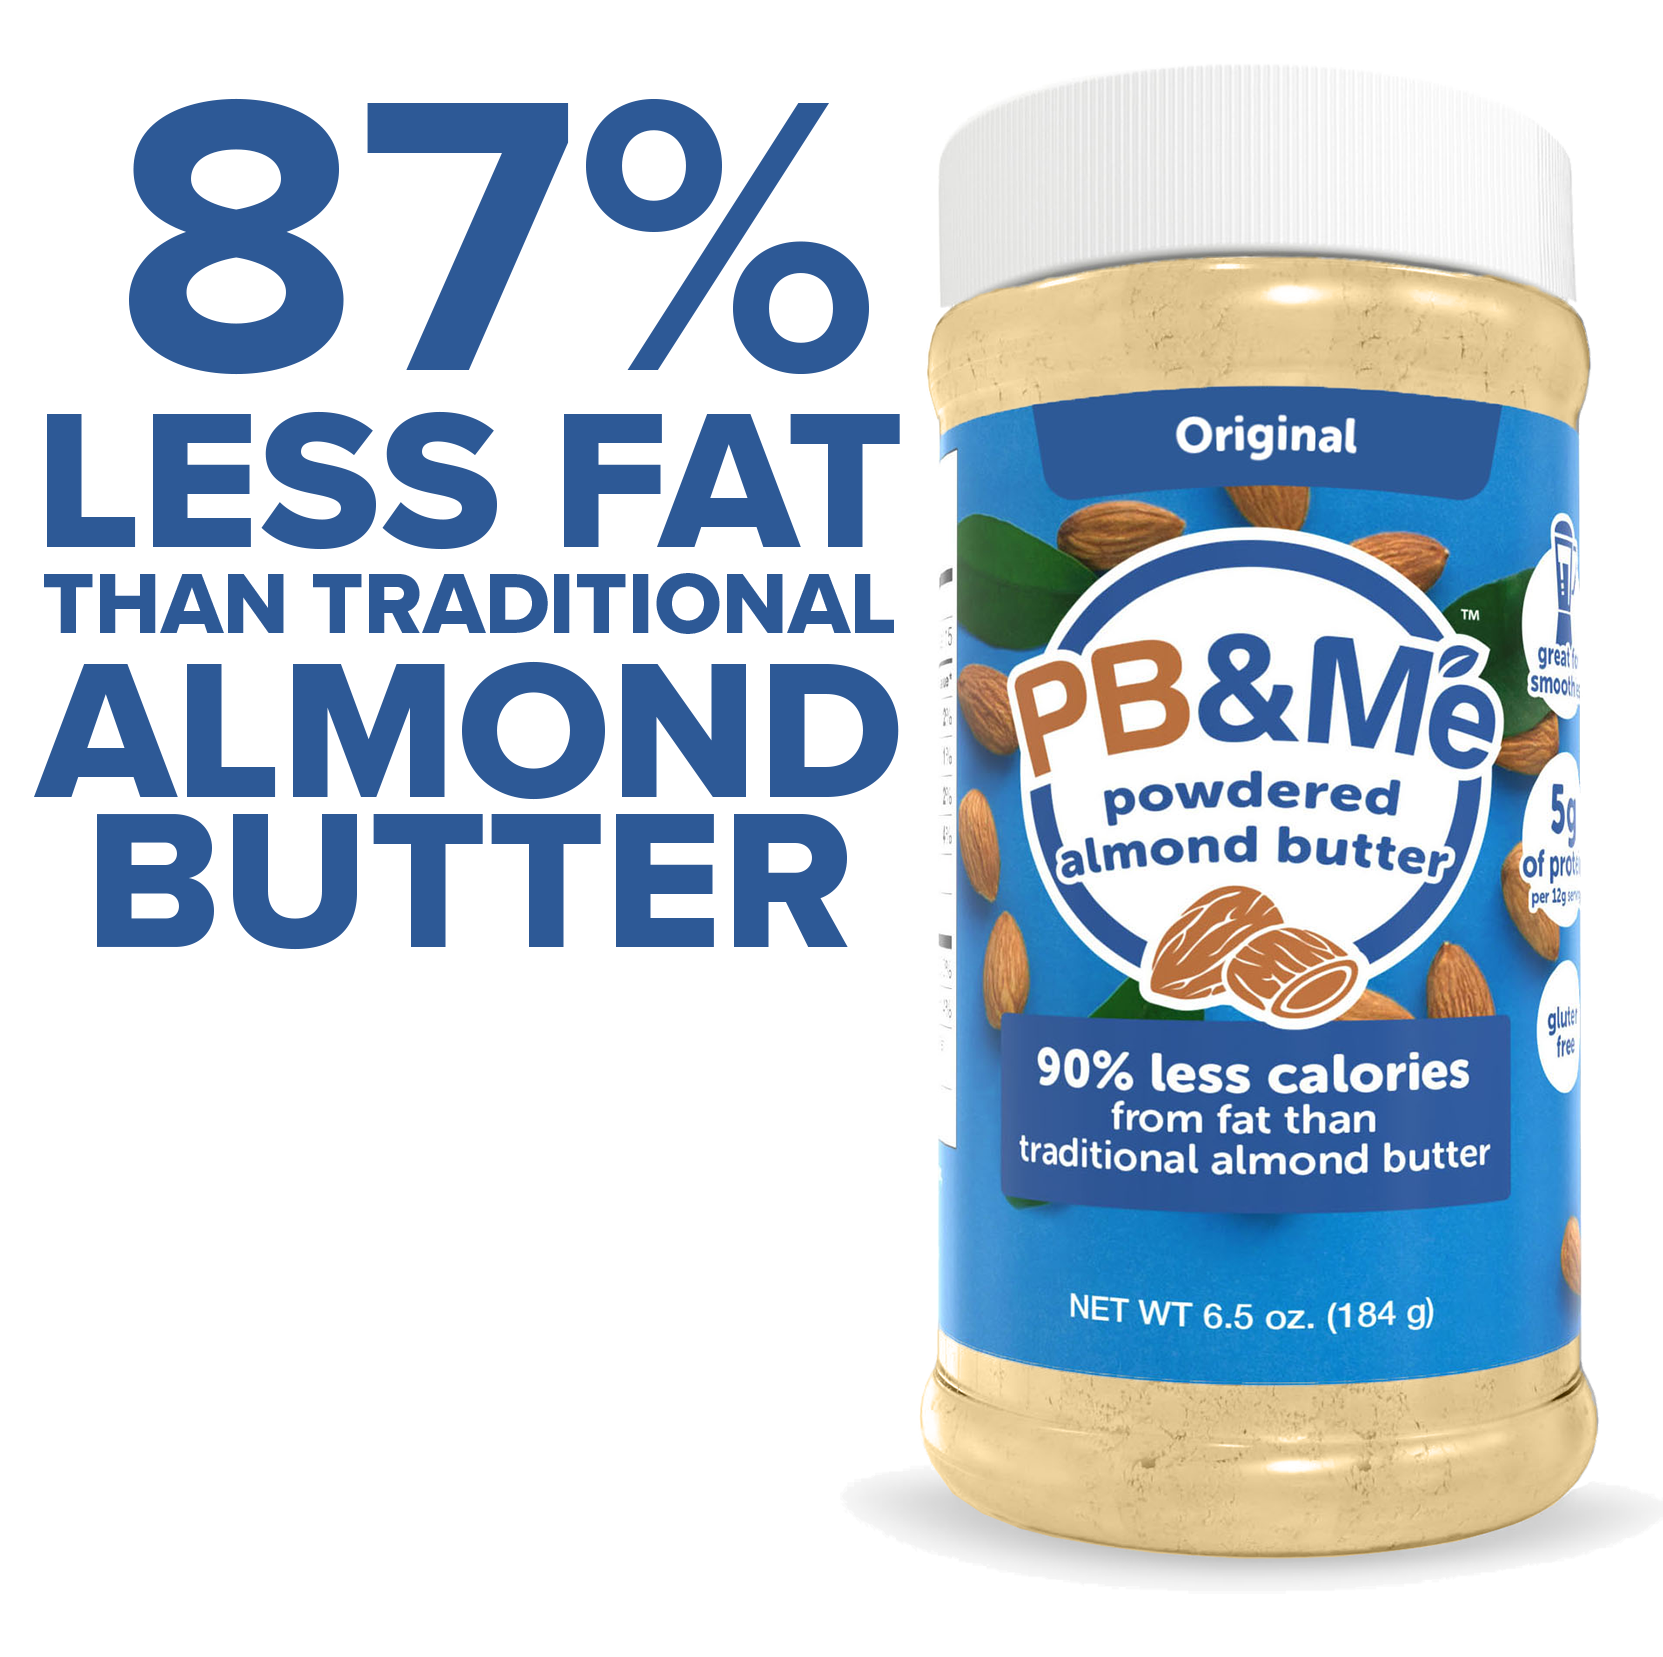 Powdered Almond Butter - Original (184g)